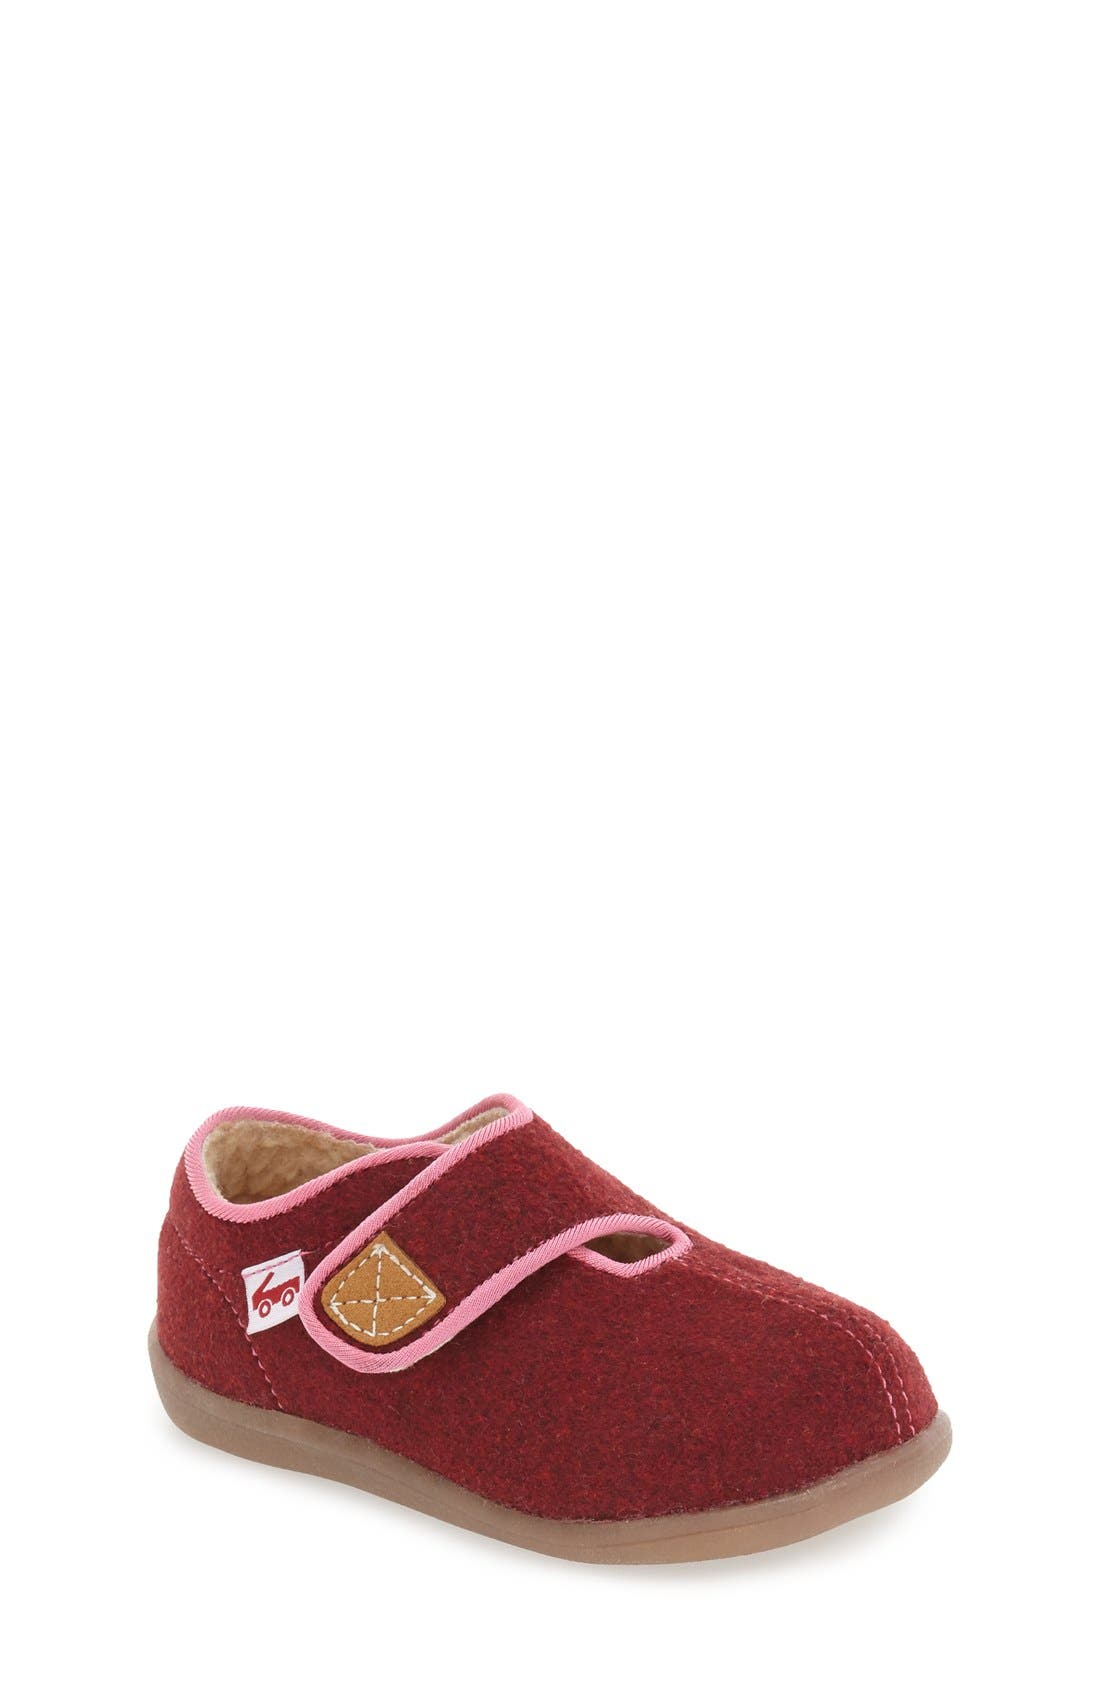 See Kai Run 'Cruz' Slipper (Baby, Walker & Toddler)